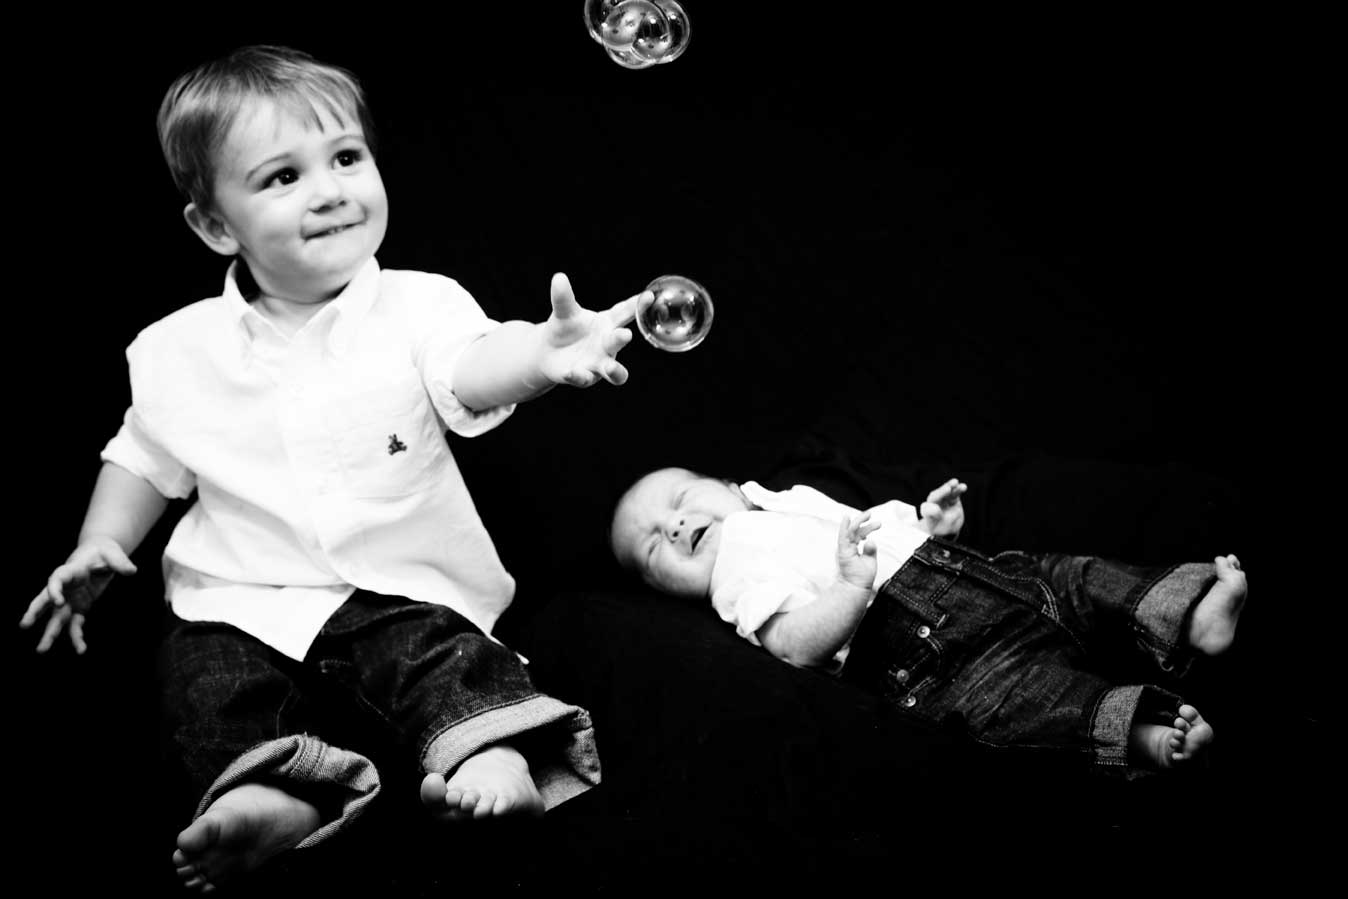 Boys and Bubbles B&W